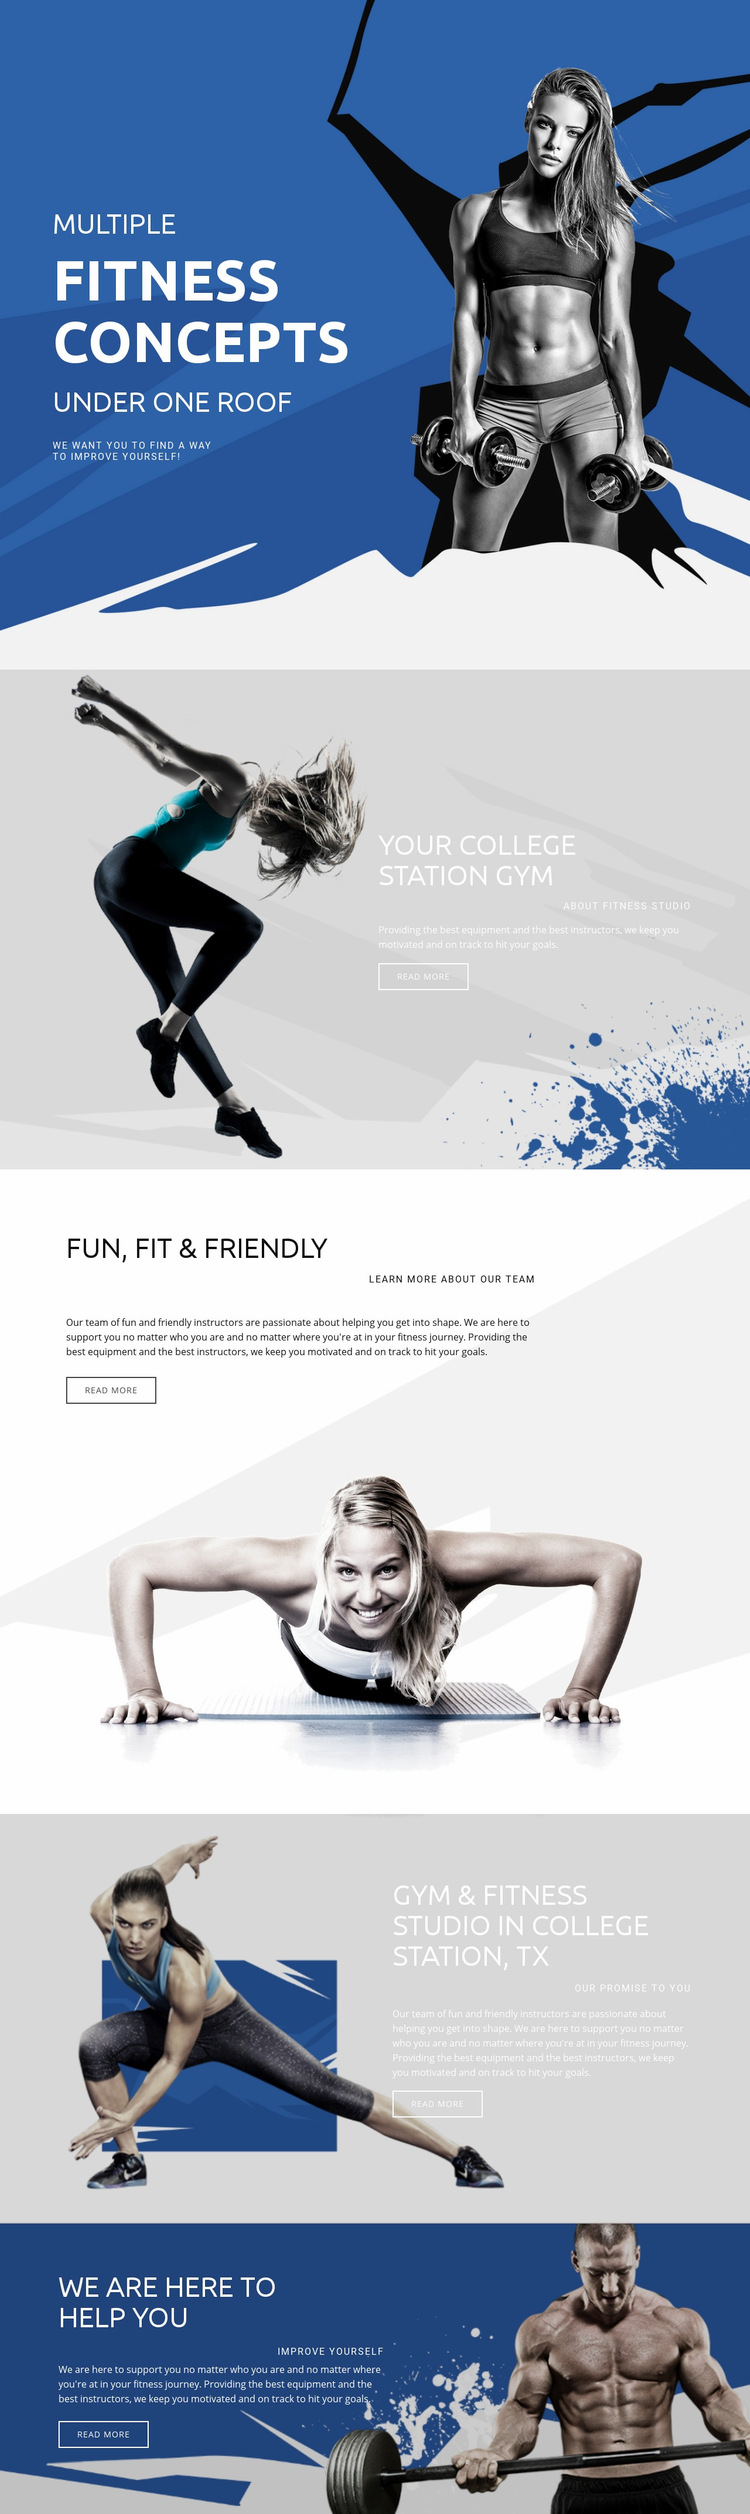 Best fitness and sports Web Page Design